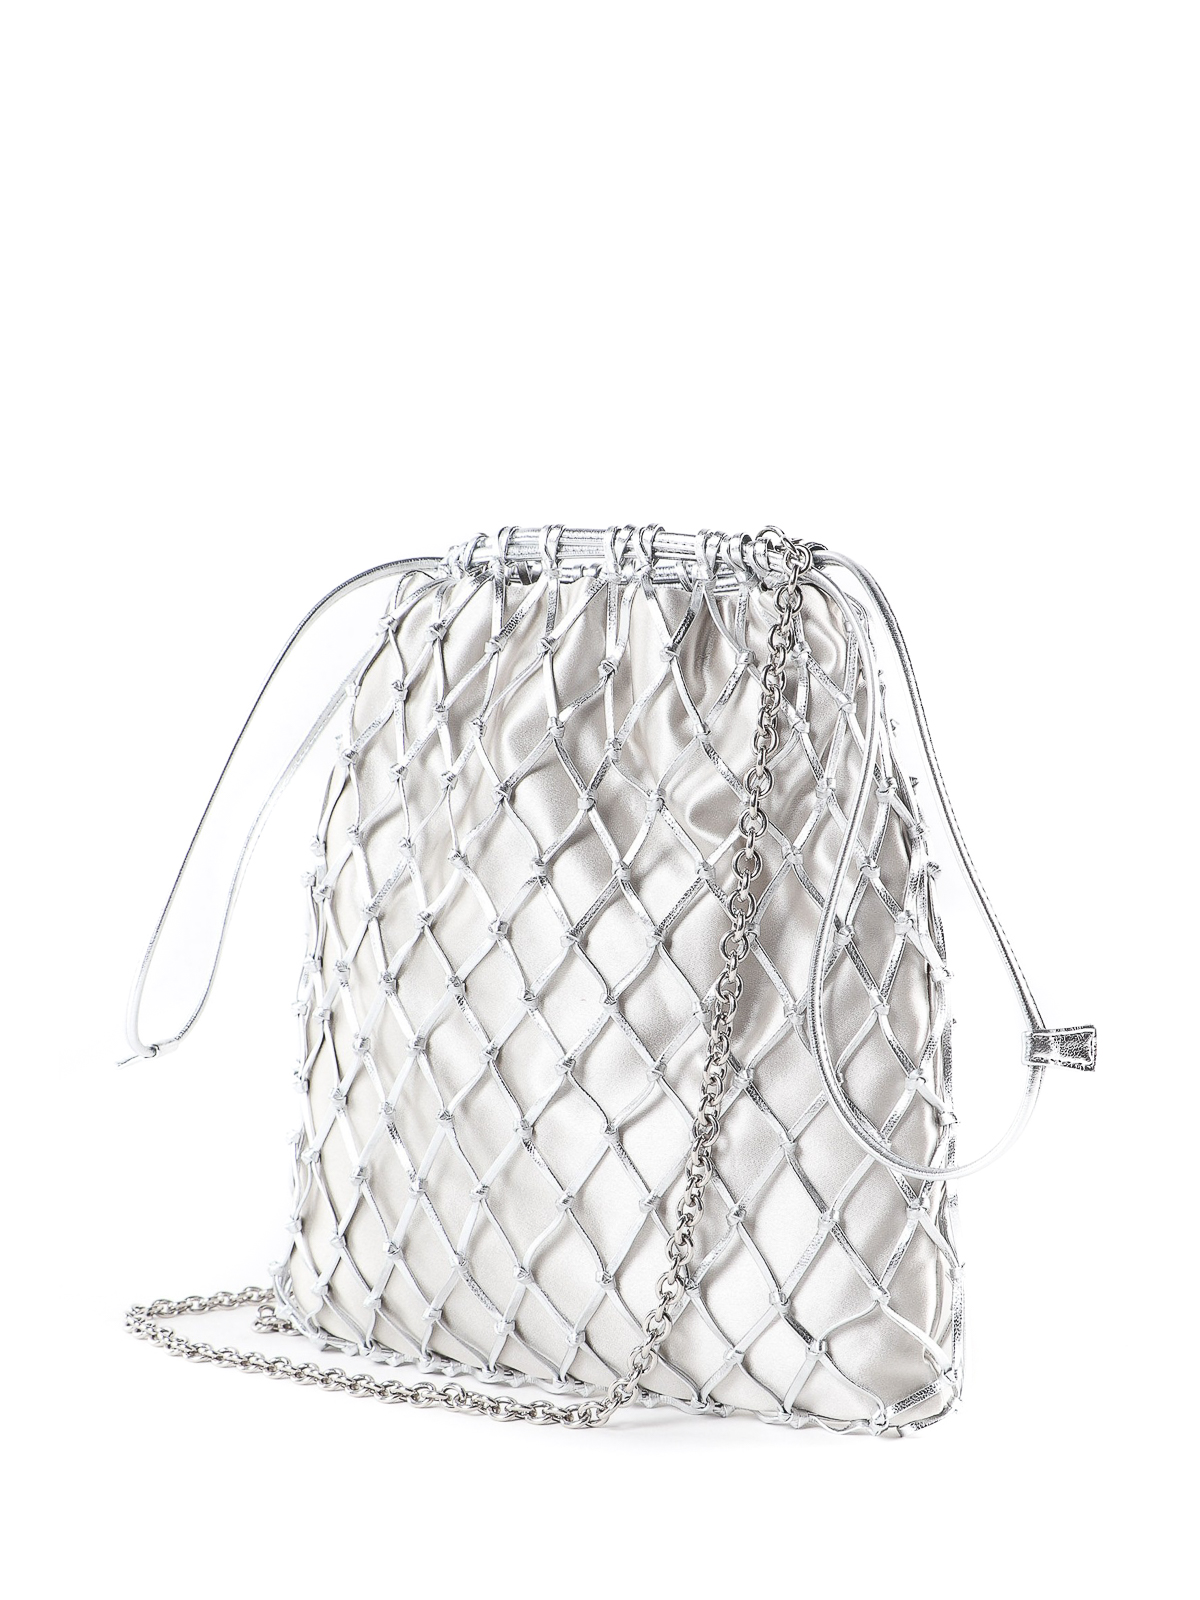 446af518d67d Prada - Silver leather mesh and satin bag - Bucket bags - 1BC075AR2 118